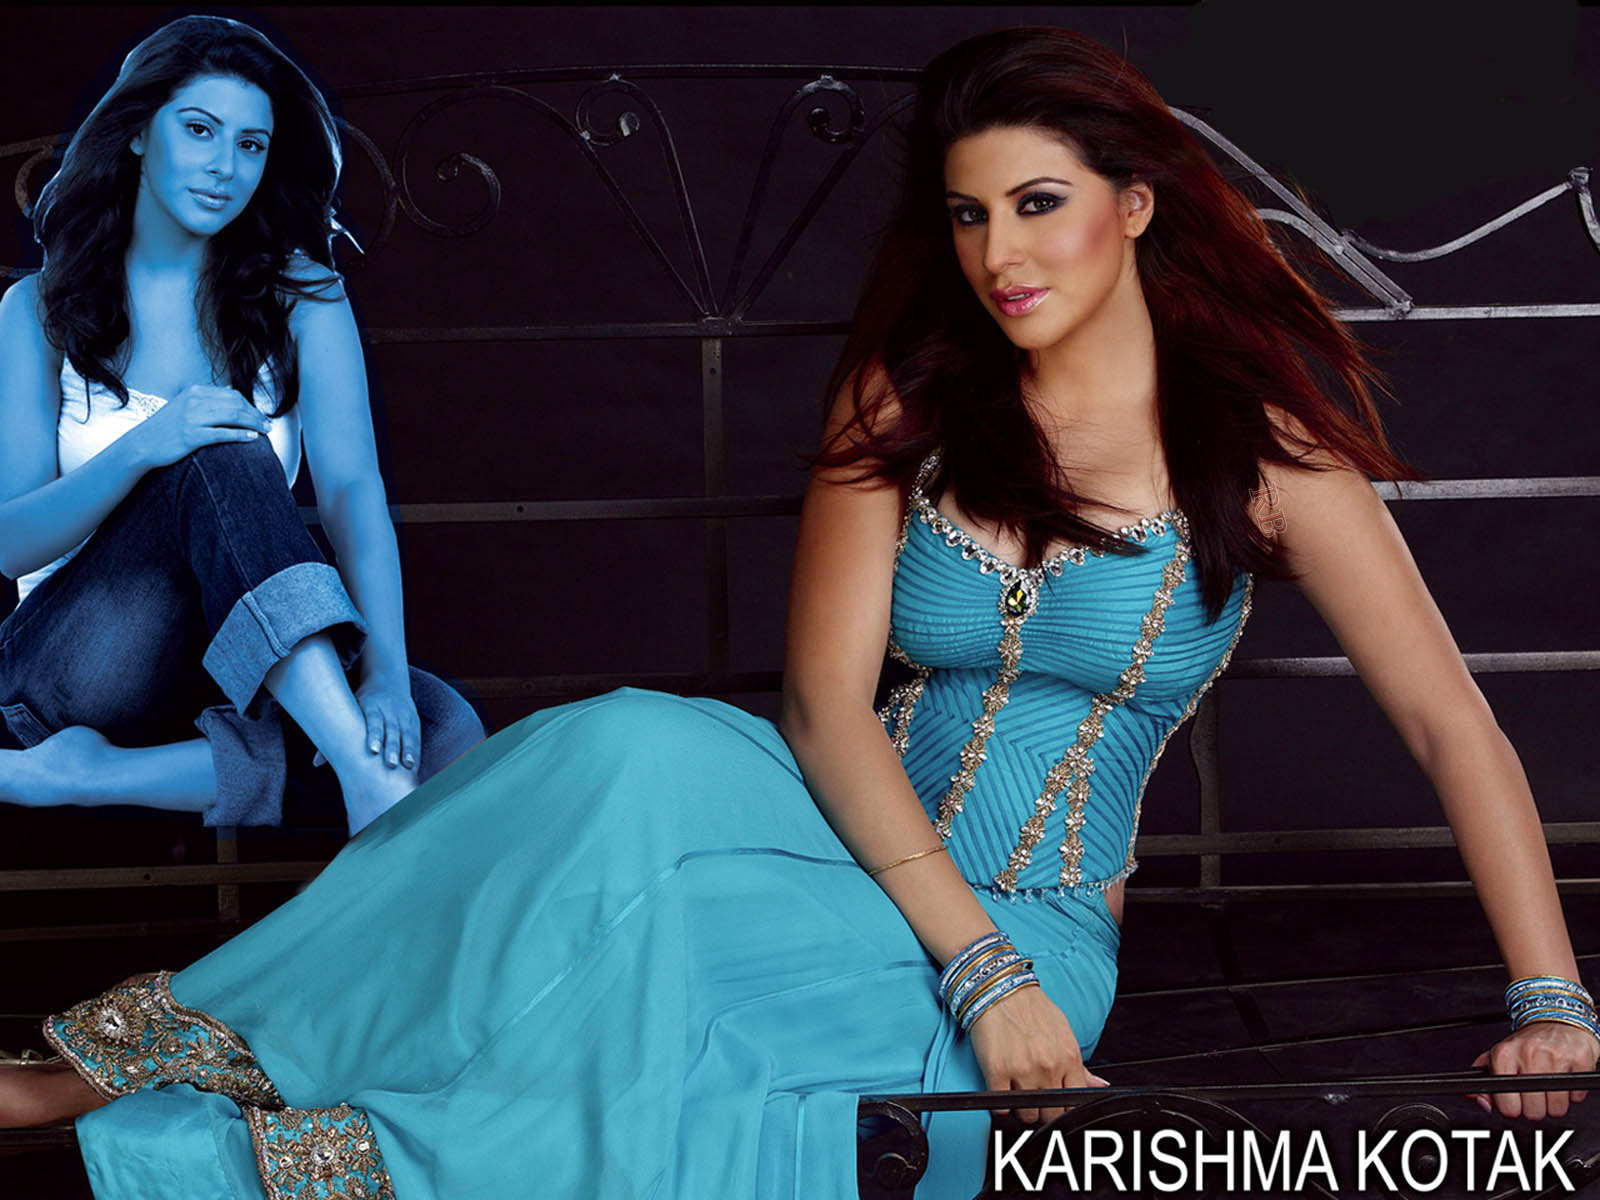 Actress karishma kotak photos